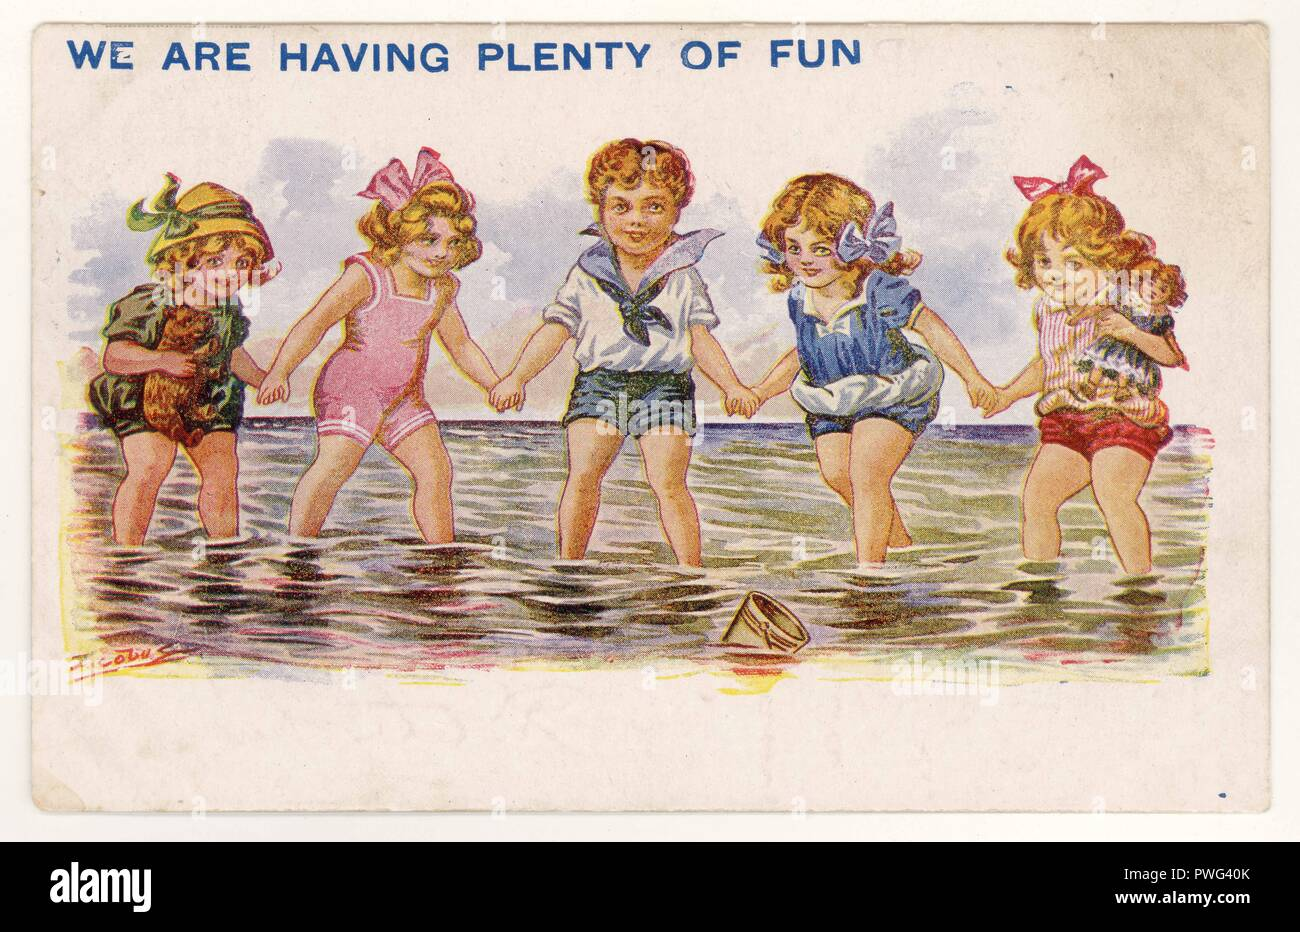 Charming illustrated seaside postcard of children bathing, posted 12 Sept 1924 from Blackpool, U.K - Stock Image